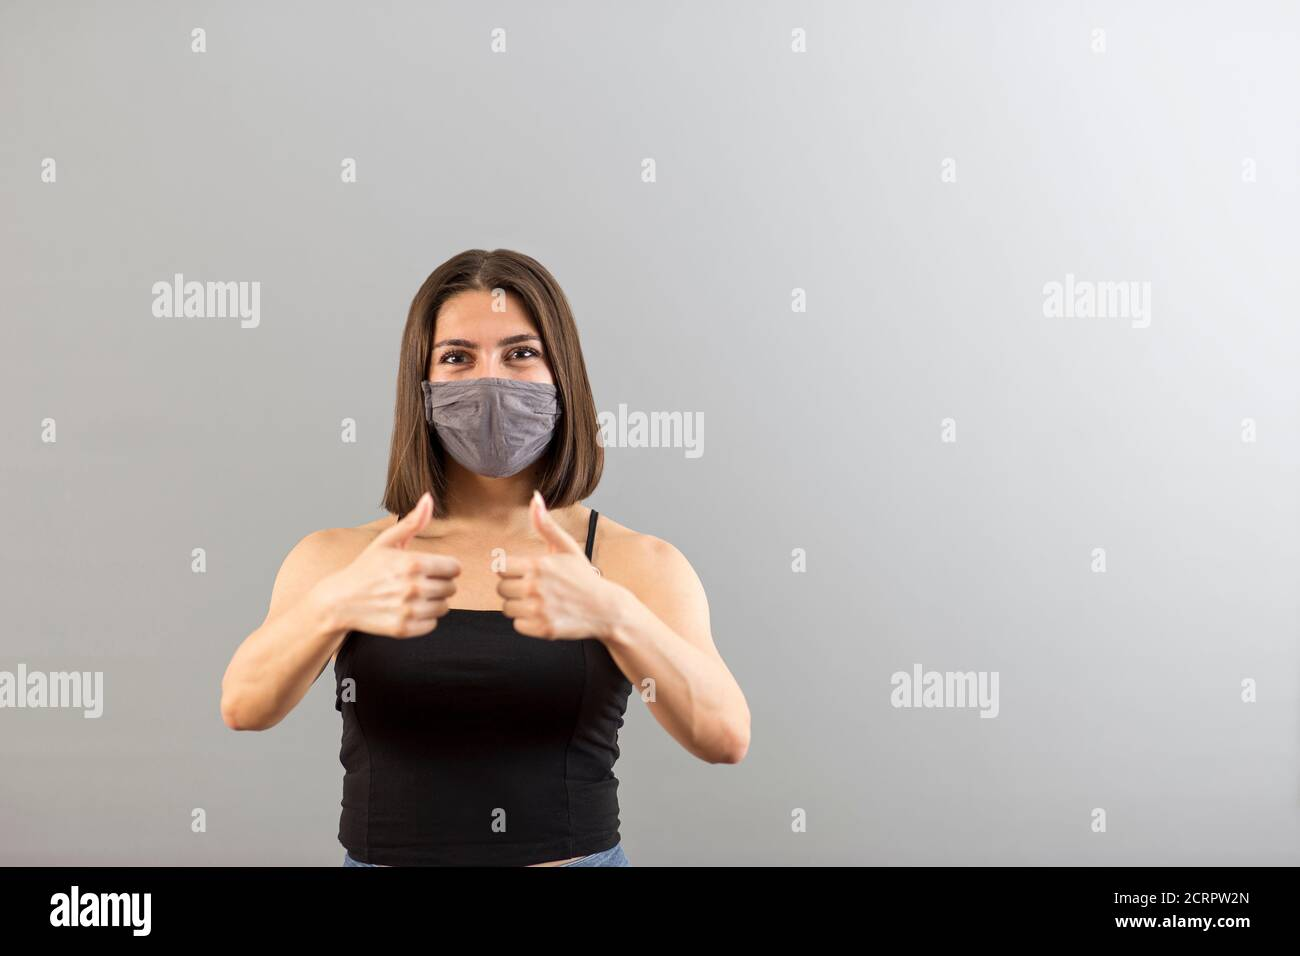 Attractive Turkish woman portrait in positive mood. She is wearing a protecive mask for new normal concept and gesturing thumbs up. Stock Photo